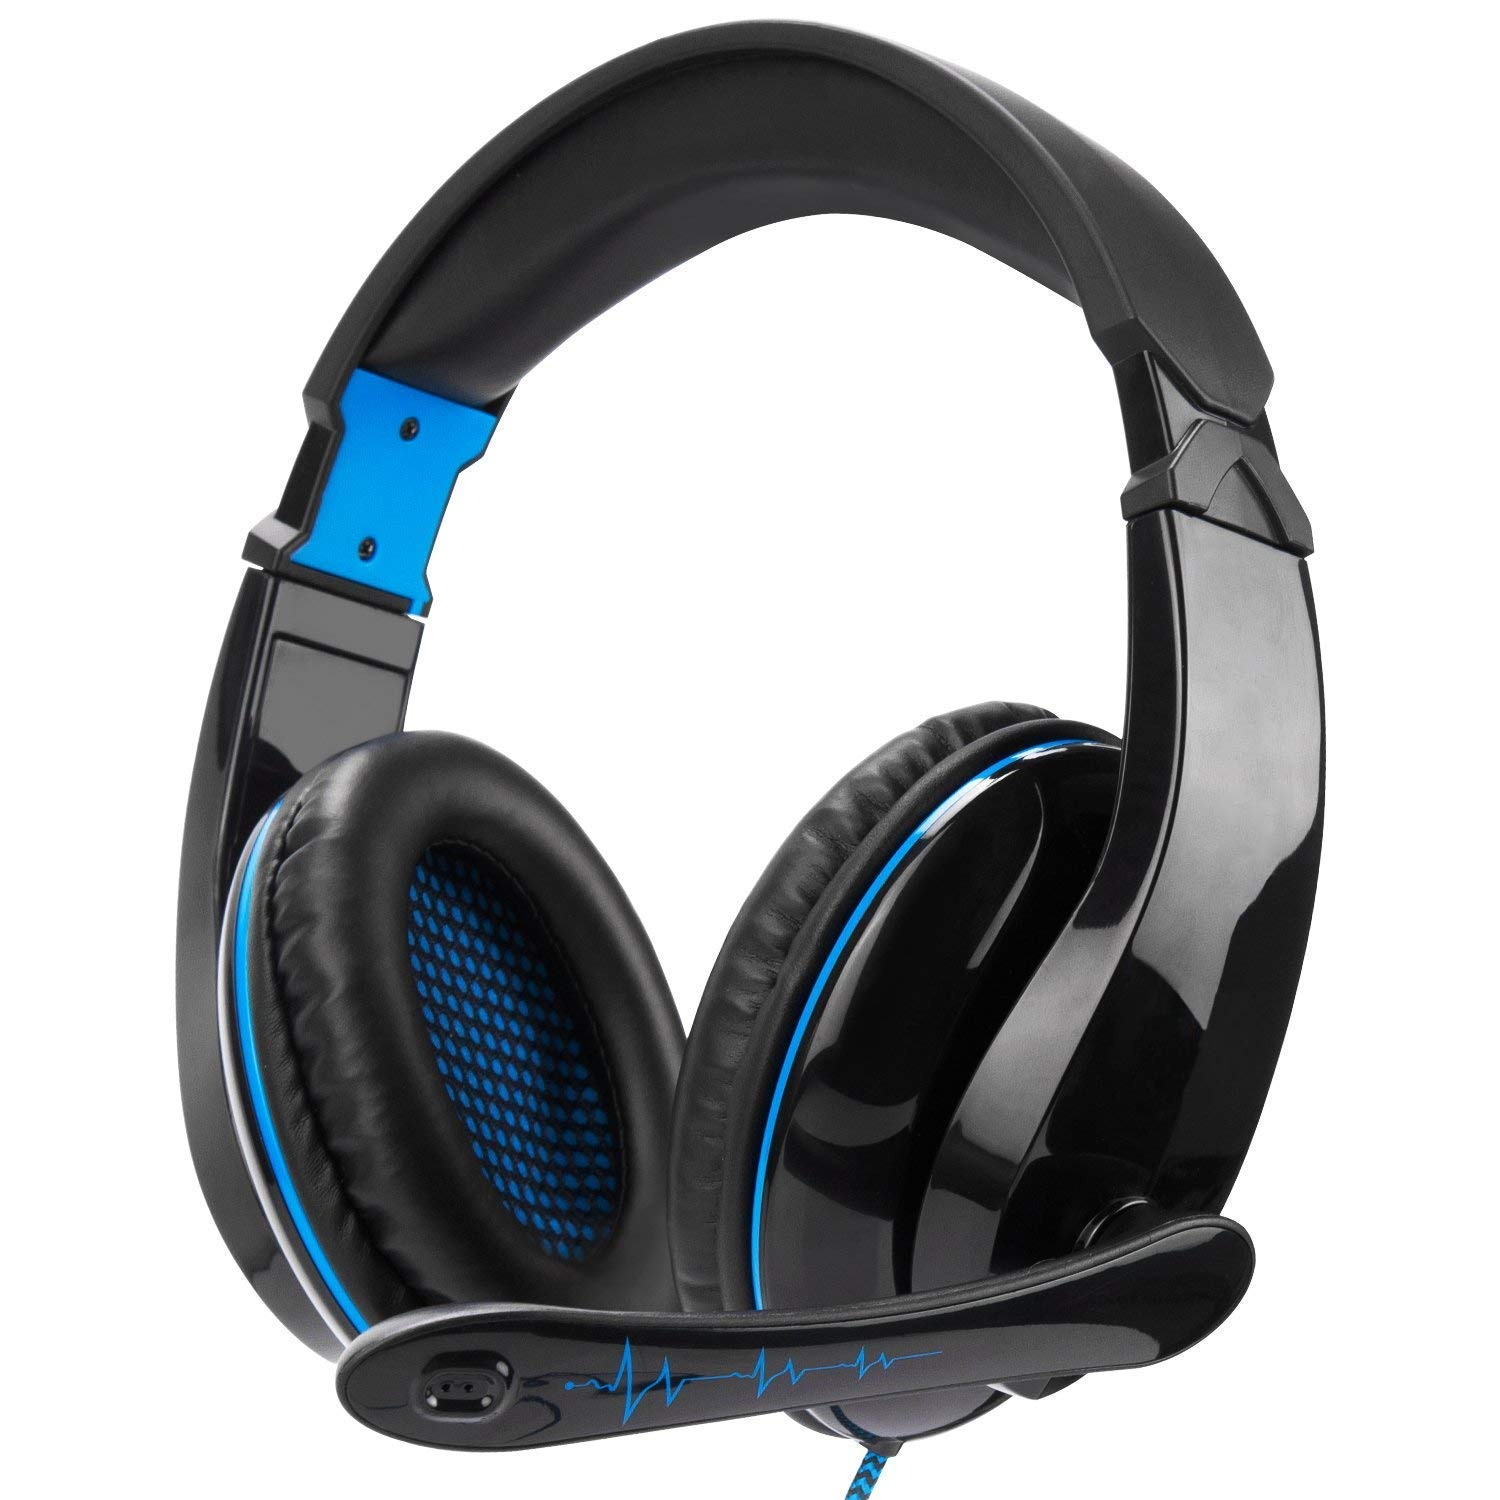 Xbox One Gaming Headset Stereo Over Ear Gaming Headset with Mic Noise Cancelling Volume Control for Xbox One/PC/Mac/PS4/Nintendo/Phone (Black&Blue) by LETTON